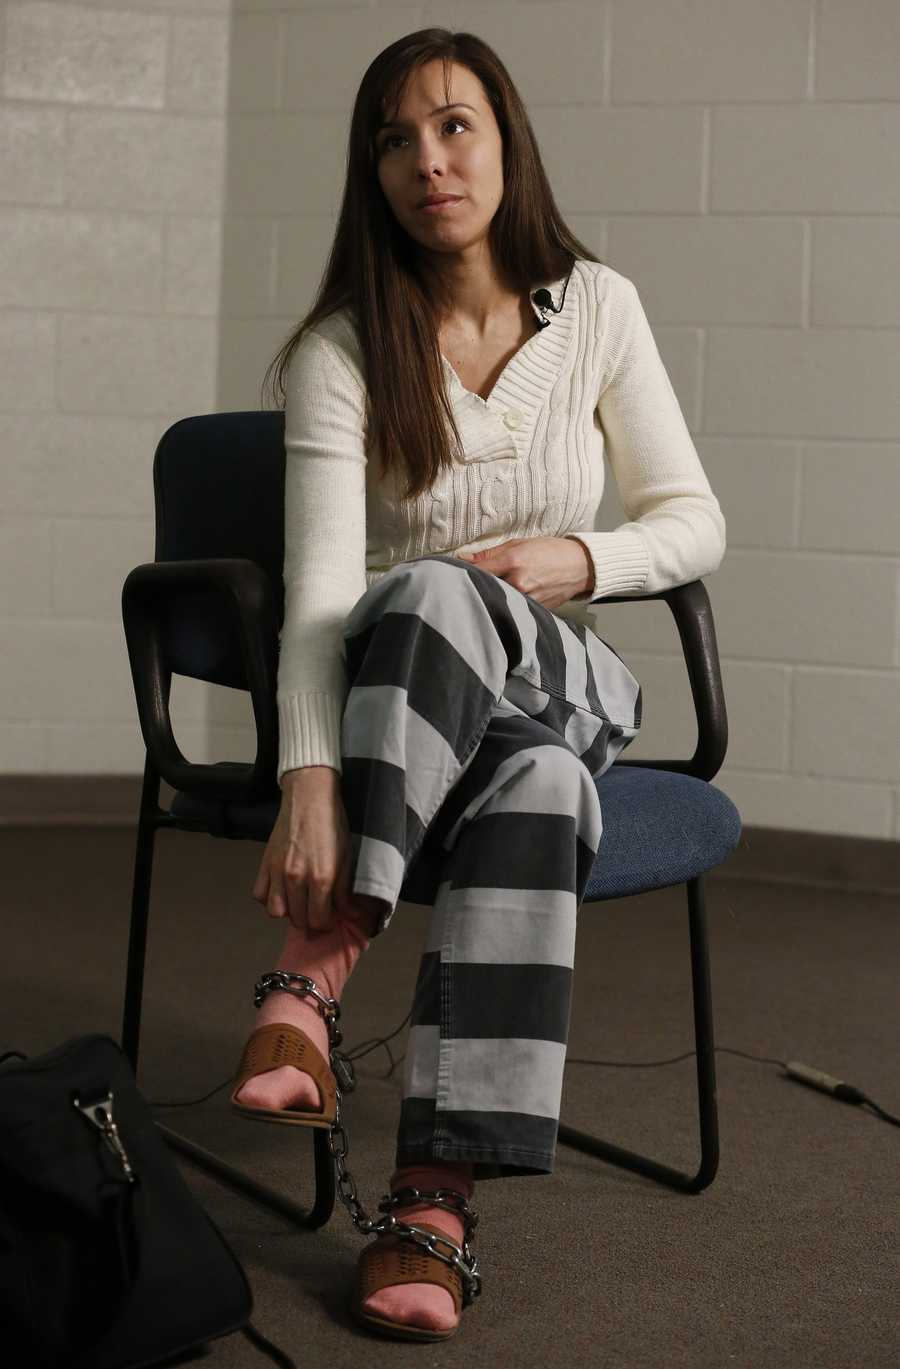 Convicted killer Jodi Arias pauses for a moment during an interview at the Maricopa County Estrella Jail on Tuesday, May 21 in Phoenix. Arias was convicted of killing her former boyfriend Travis Alexander in his suburban Phoenix home back in 2008.